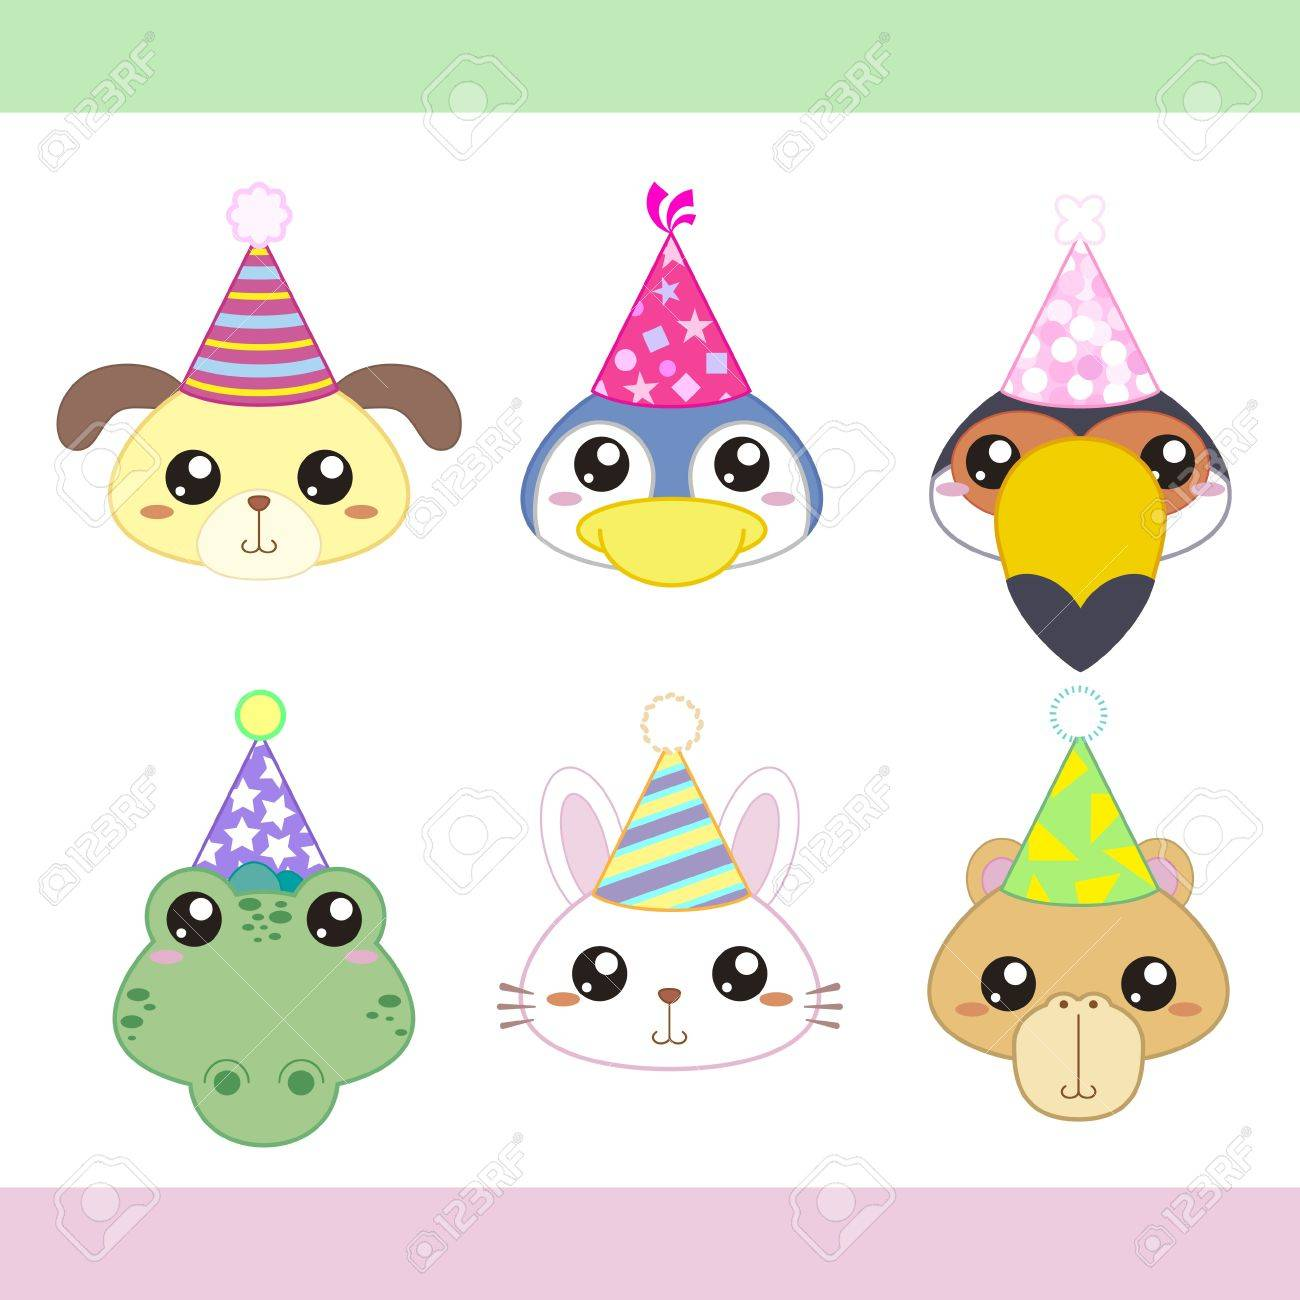 cartoon party animal icons collection Stock Vector - 18570448